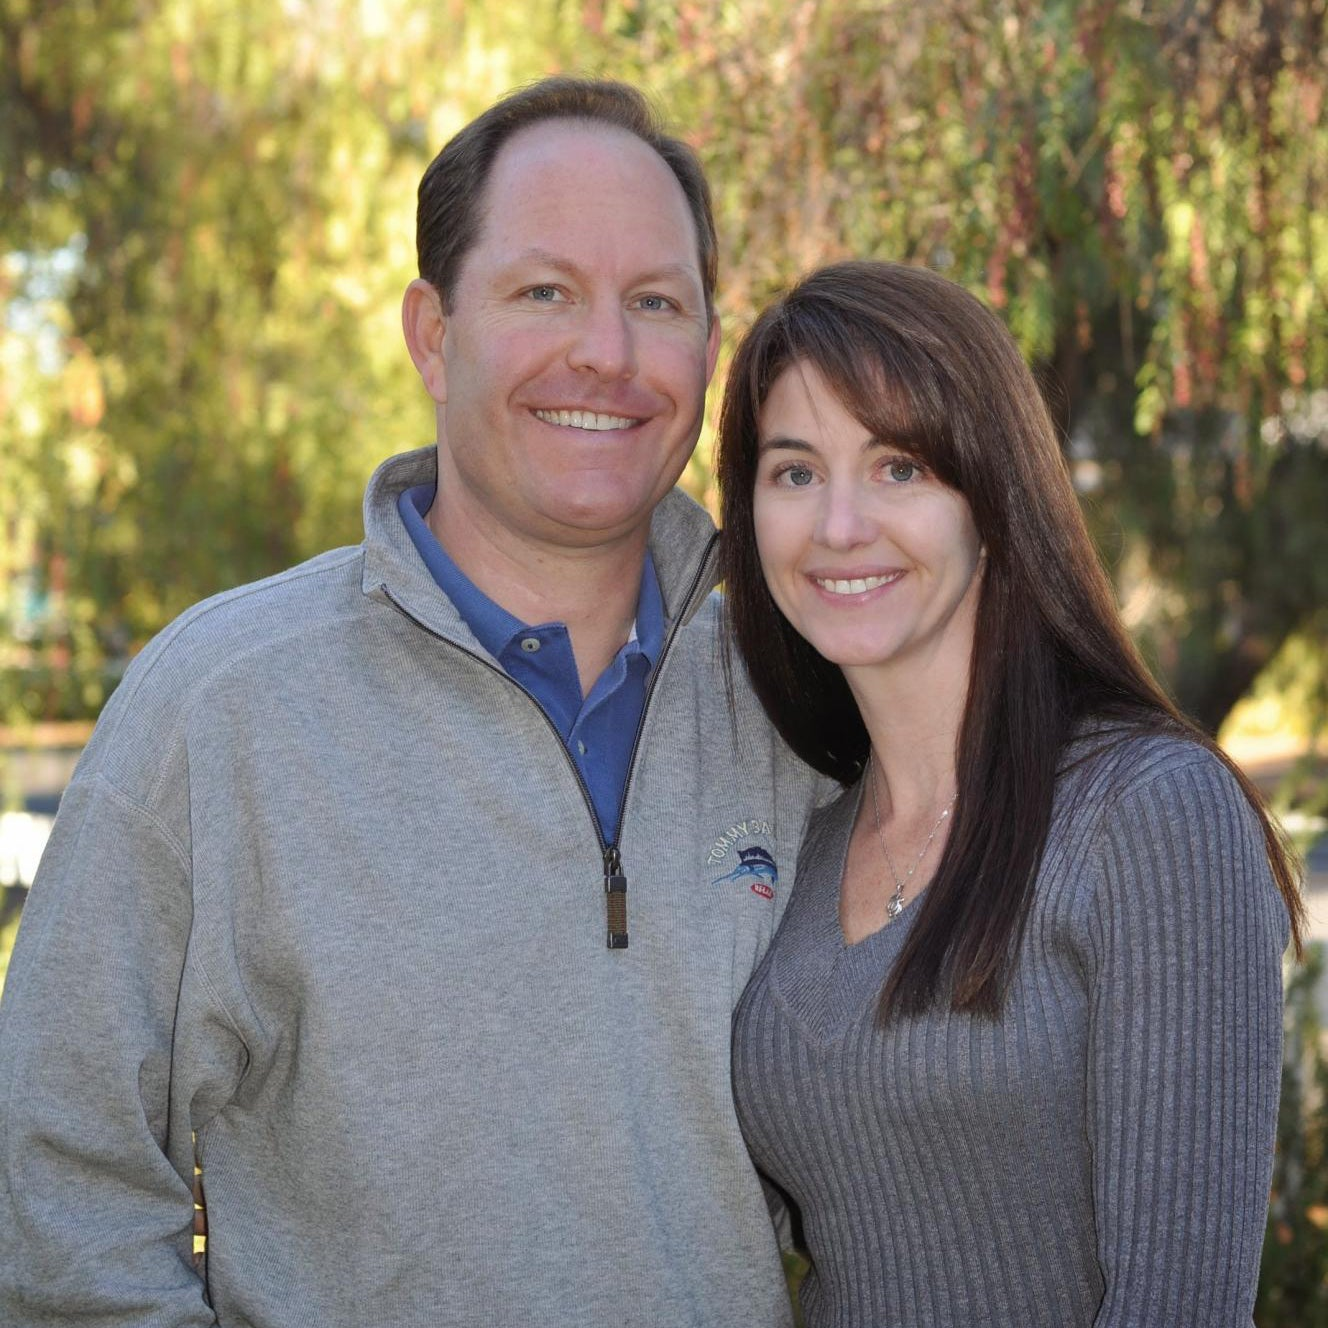 Stephanie and Carl Schachter (parents of Evelyn '20, Caroline '22 and Harrison '24)